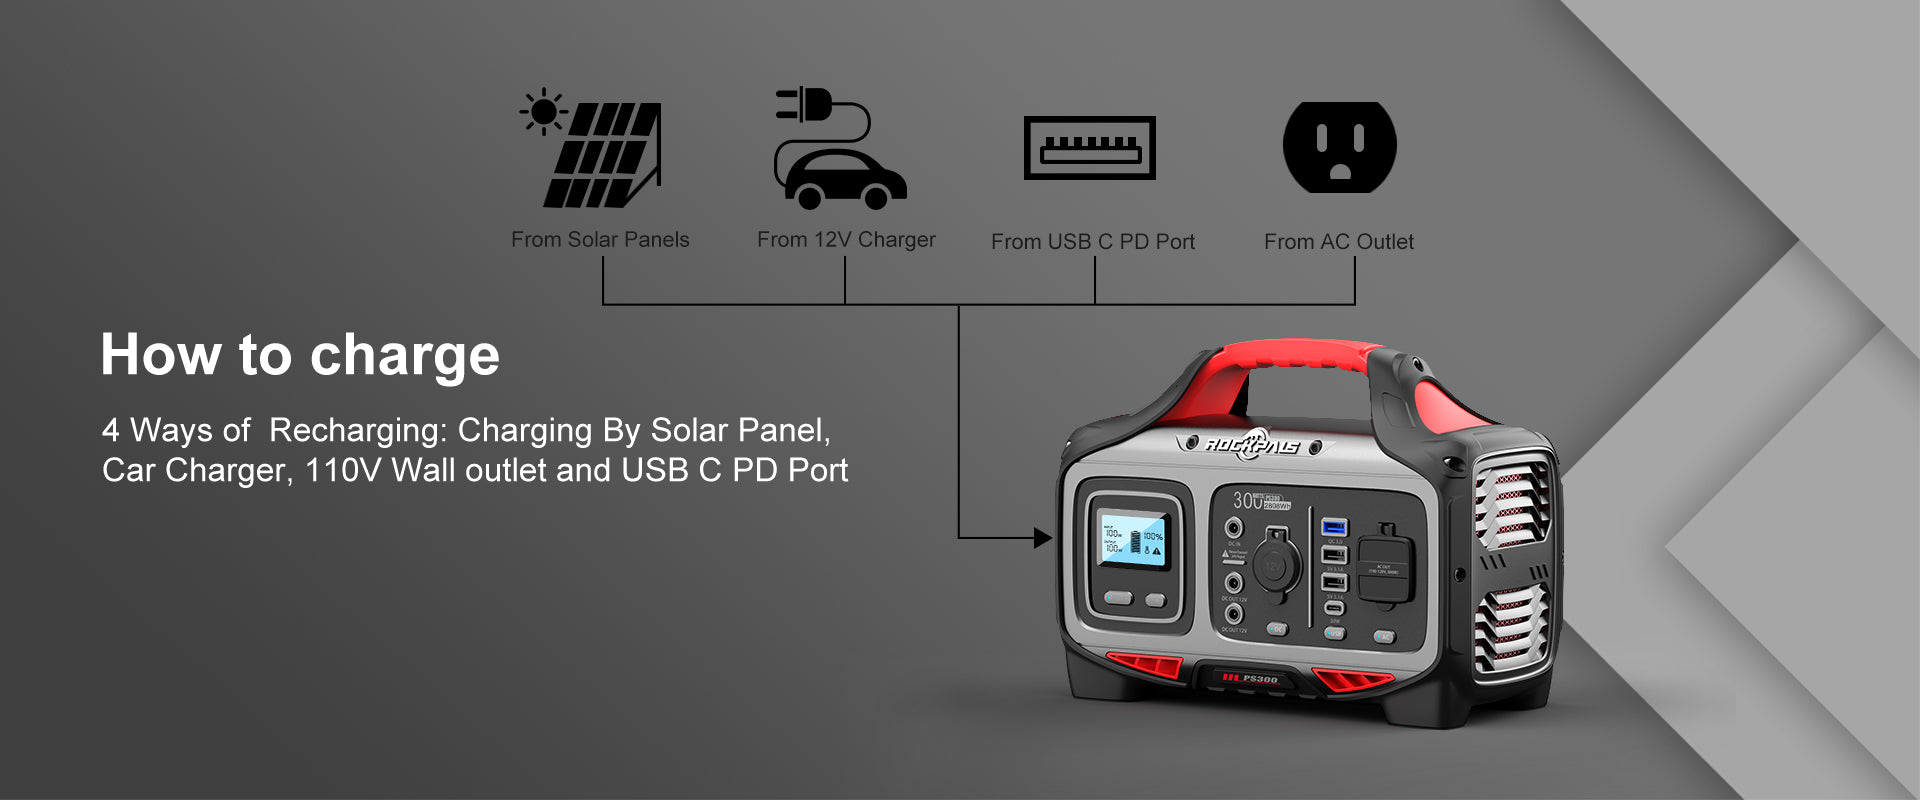 Rockpals Rockpower 300W Portable Power Station